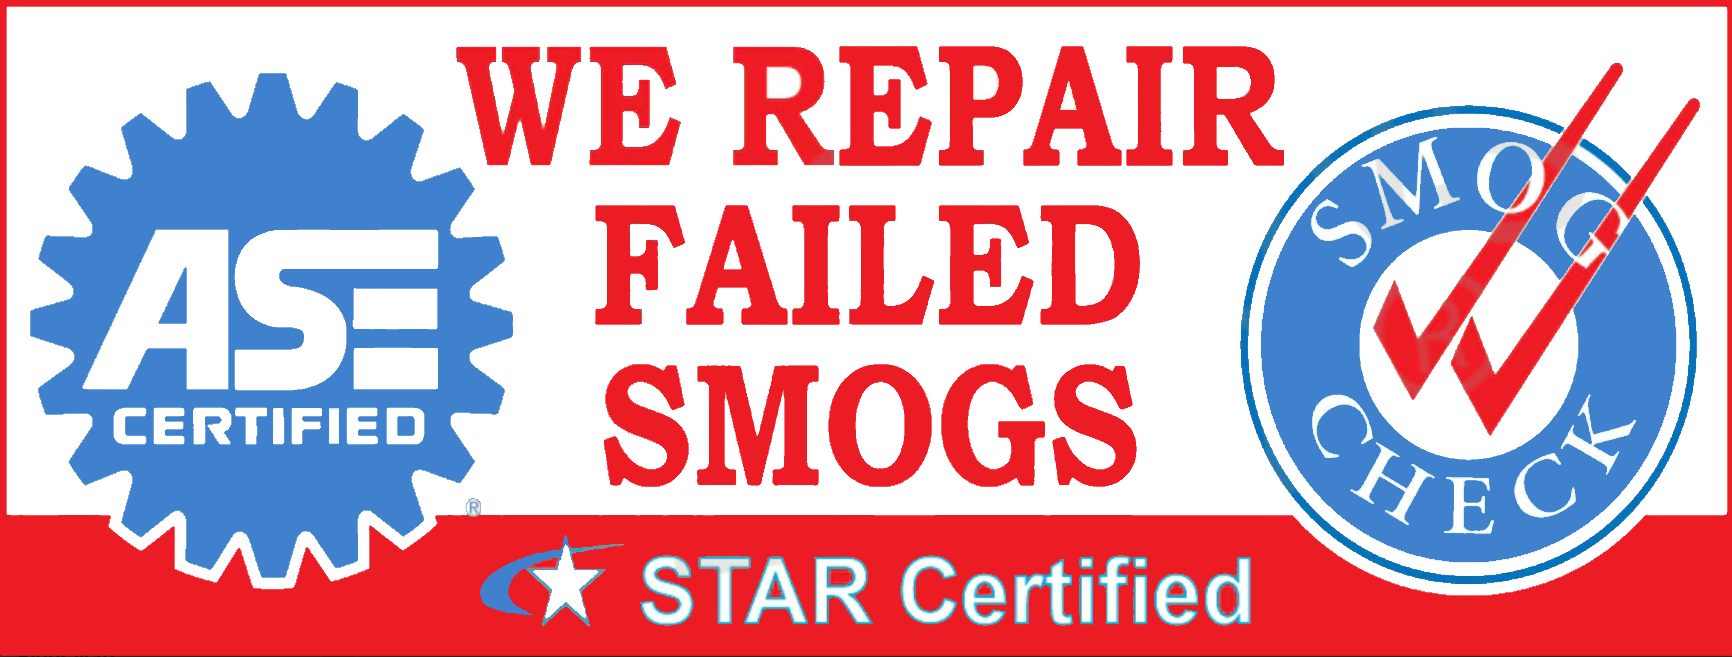 We Repair Failed Smogs | ASE and Smog Check | Vinyl Banner